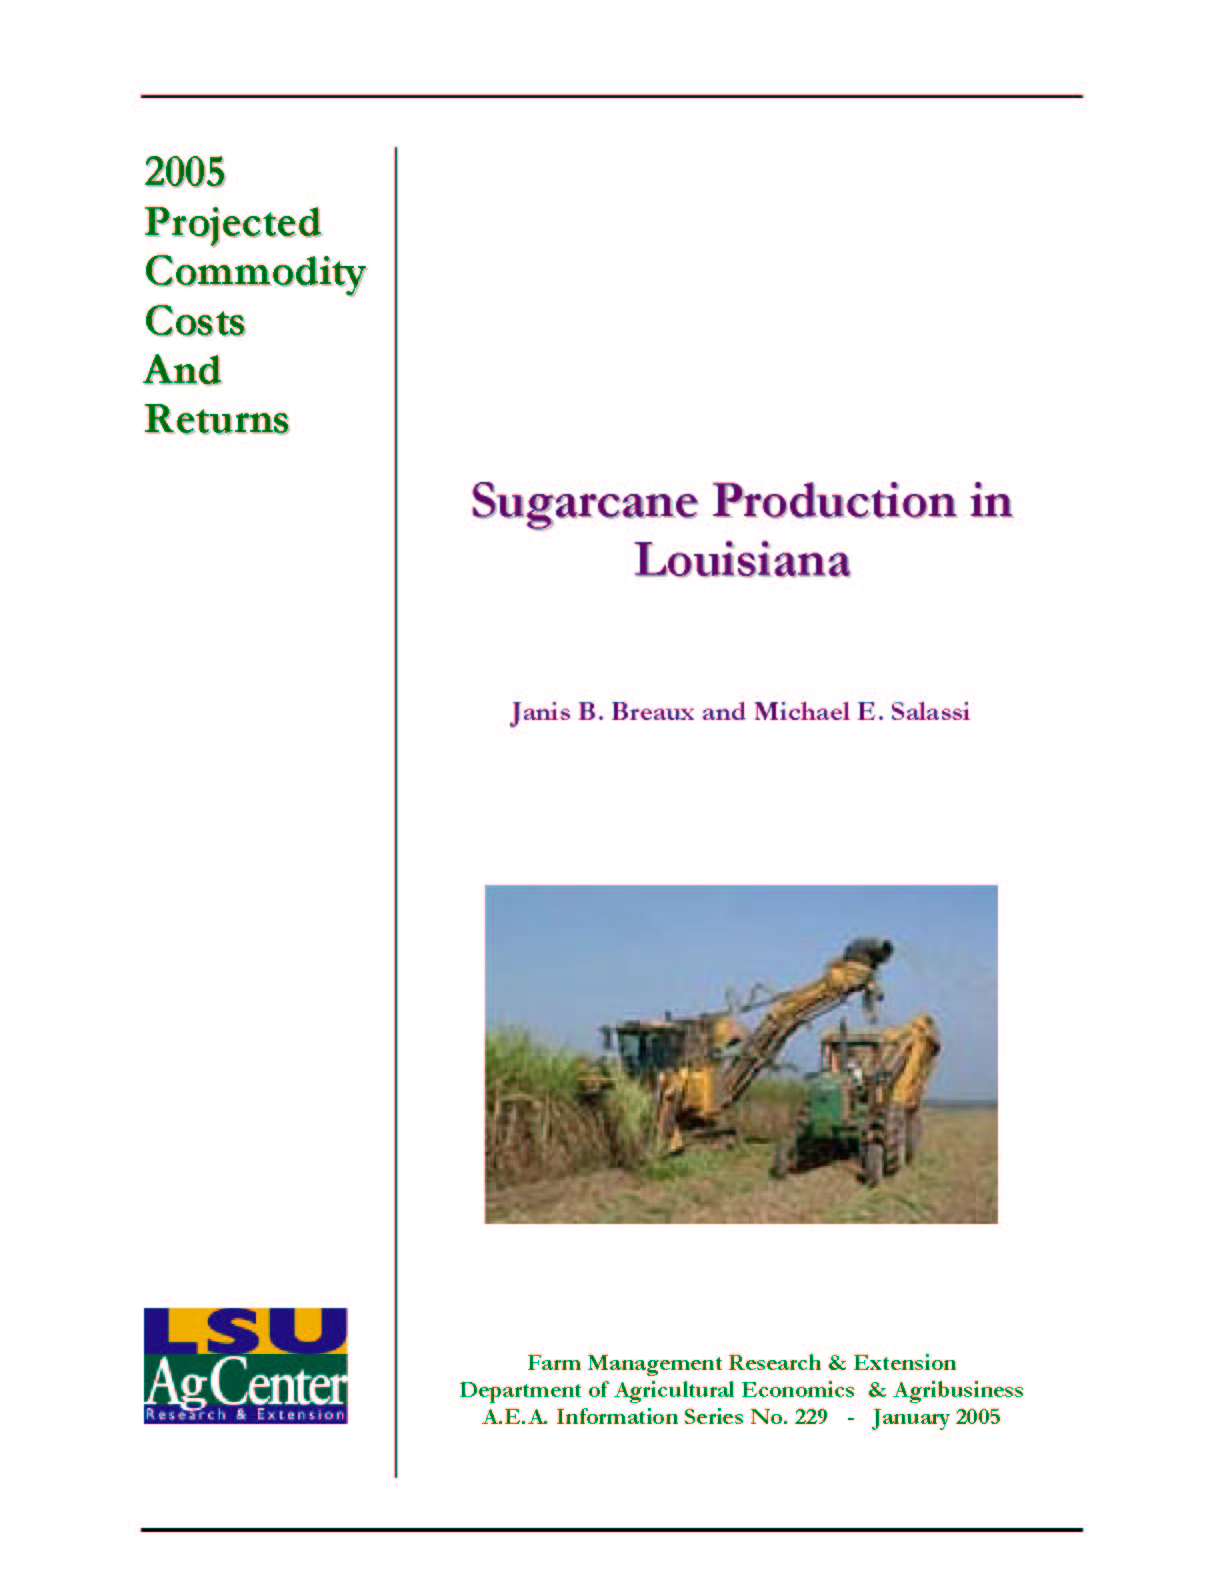 2005 Projected Louisiana Sugarcane Production Costs